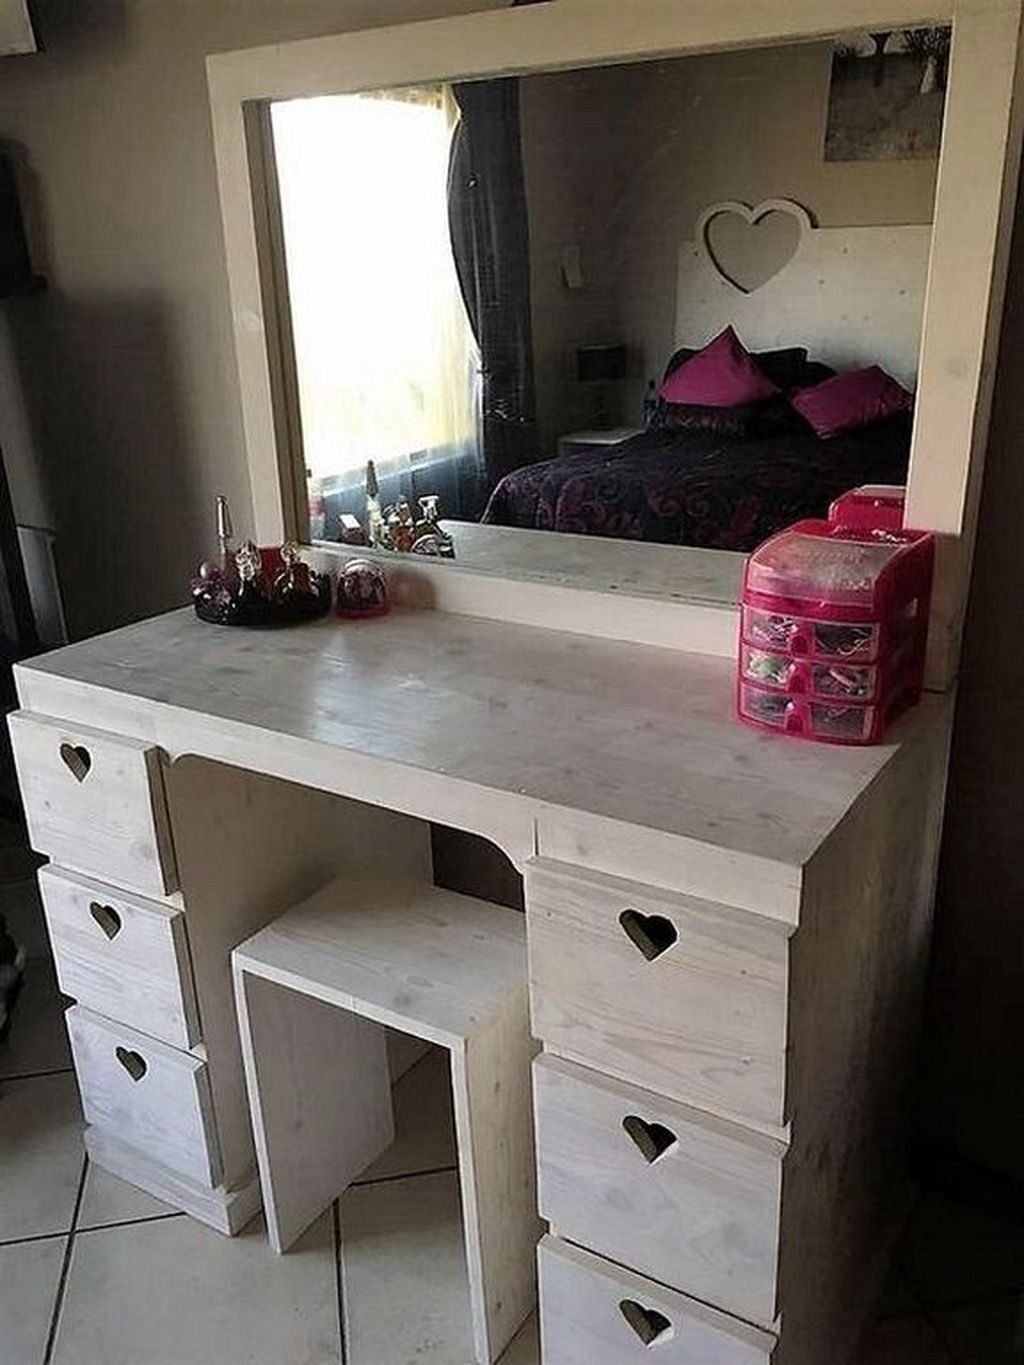 Fineboard Three Mirror Vanity Dressing Table Set with